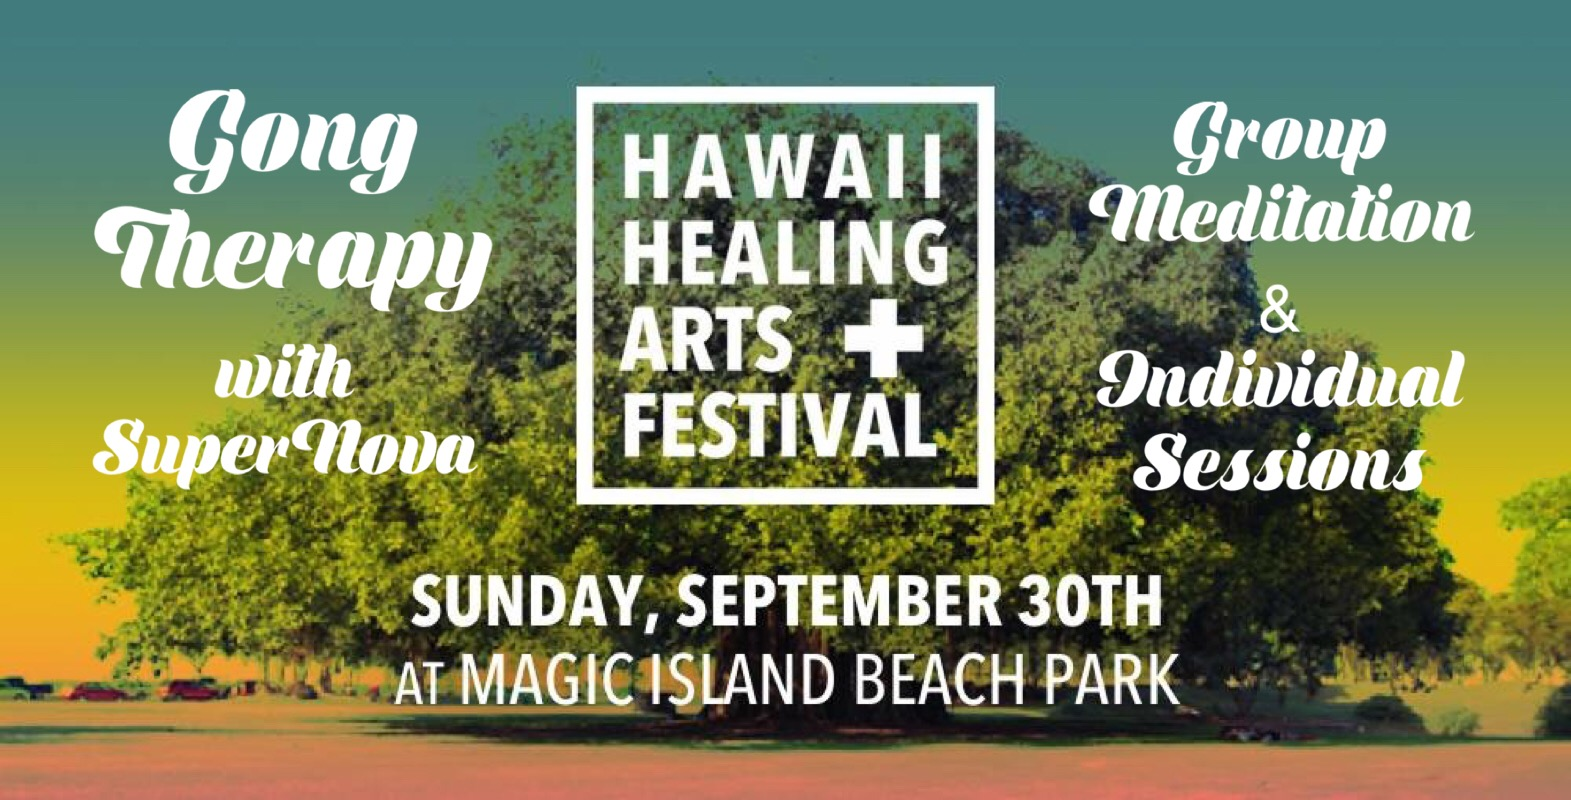 The Gong Magick continues....and it arrives @  The Healing Arts Festival  at Magic Island in Honolulu!  SuperNova Sarah Daigle will be offering group & individual sound healing meditations! See Offerings:  ALL SuperNova Offerings are DONATION based - Donations go to the Aloha Health Collective.   10am-3pm  - Private 10-20 minute Gong Therapy Energy Upgrades *Sign up at the booth!   4-5pm  - Group Gong Meditation @ the main stage *All are welcome! _________________________________________________  ADMISSION to Event:   Suggested Contribution: $15 Wristband Entry  Wristband Includes:  - 25% Off All Healer & Practitioner Services - Access to All Workshops & Performances - Silent Disco (ID deposit required) - Entry into After Party at Ong King Arts Center  (No discount on product vendors with wristband, practitioner services only). _________________________________________________   MORE INFO for ALL of the AMAZING offerings at the festival:   Tribal Connections Hawaii Presents: Hawaii Healing Arts Festival  _________________________________________________   BENEFITS OF THE SACRED SOUND:  -stress & anxiety relief, -pain relief, -speeds up healing process, -improve symptoms of depression, -PTSD antidote, -anti-aging, -repair & activate DNA, -improve sleep patterns, -brings more joy & motivation -spark new creative ideas and help to bring clarity to those areas of your life you may be unsure about.    More Info on Sound Healing/SuperNova:   www.SuperNovaEnergetics.com   SuperNova Energetics